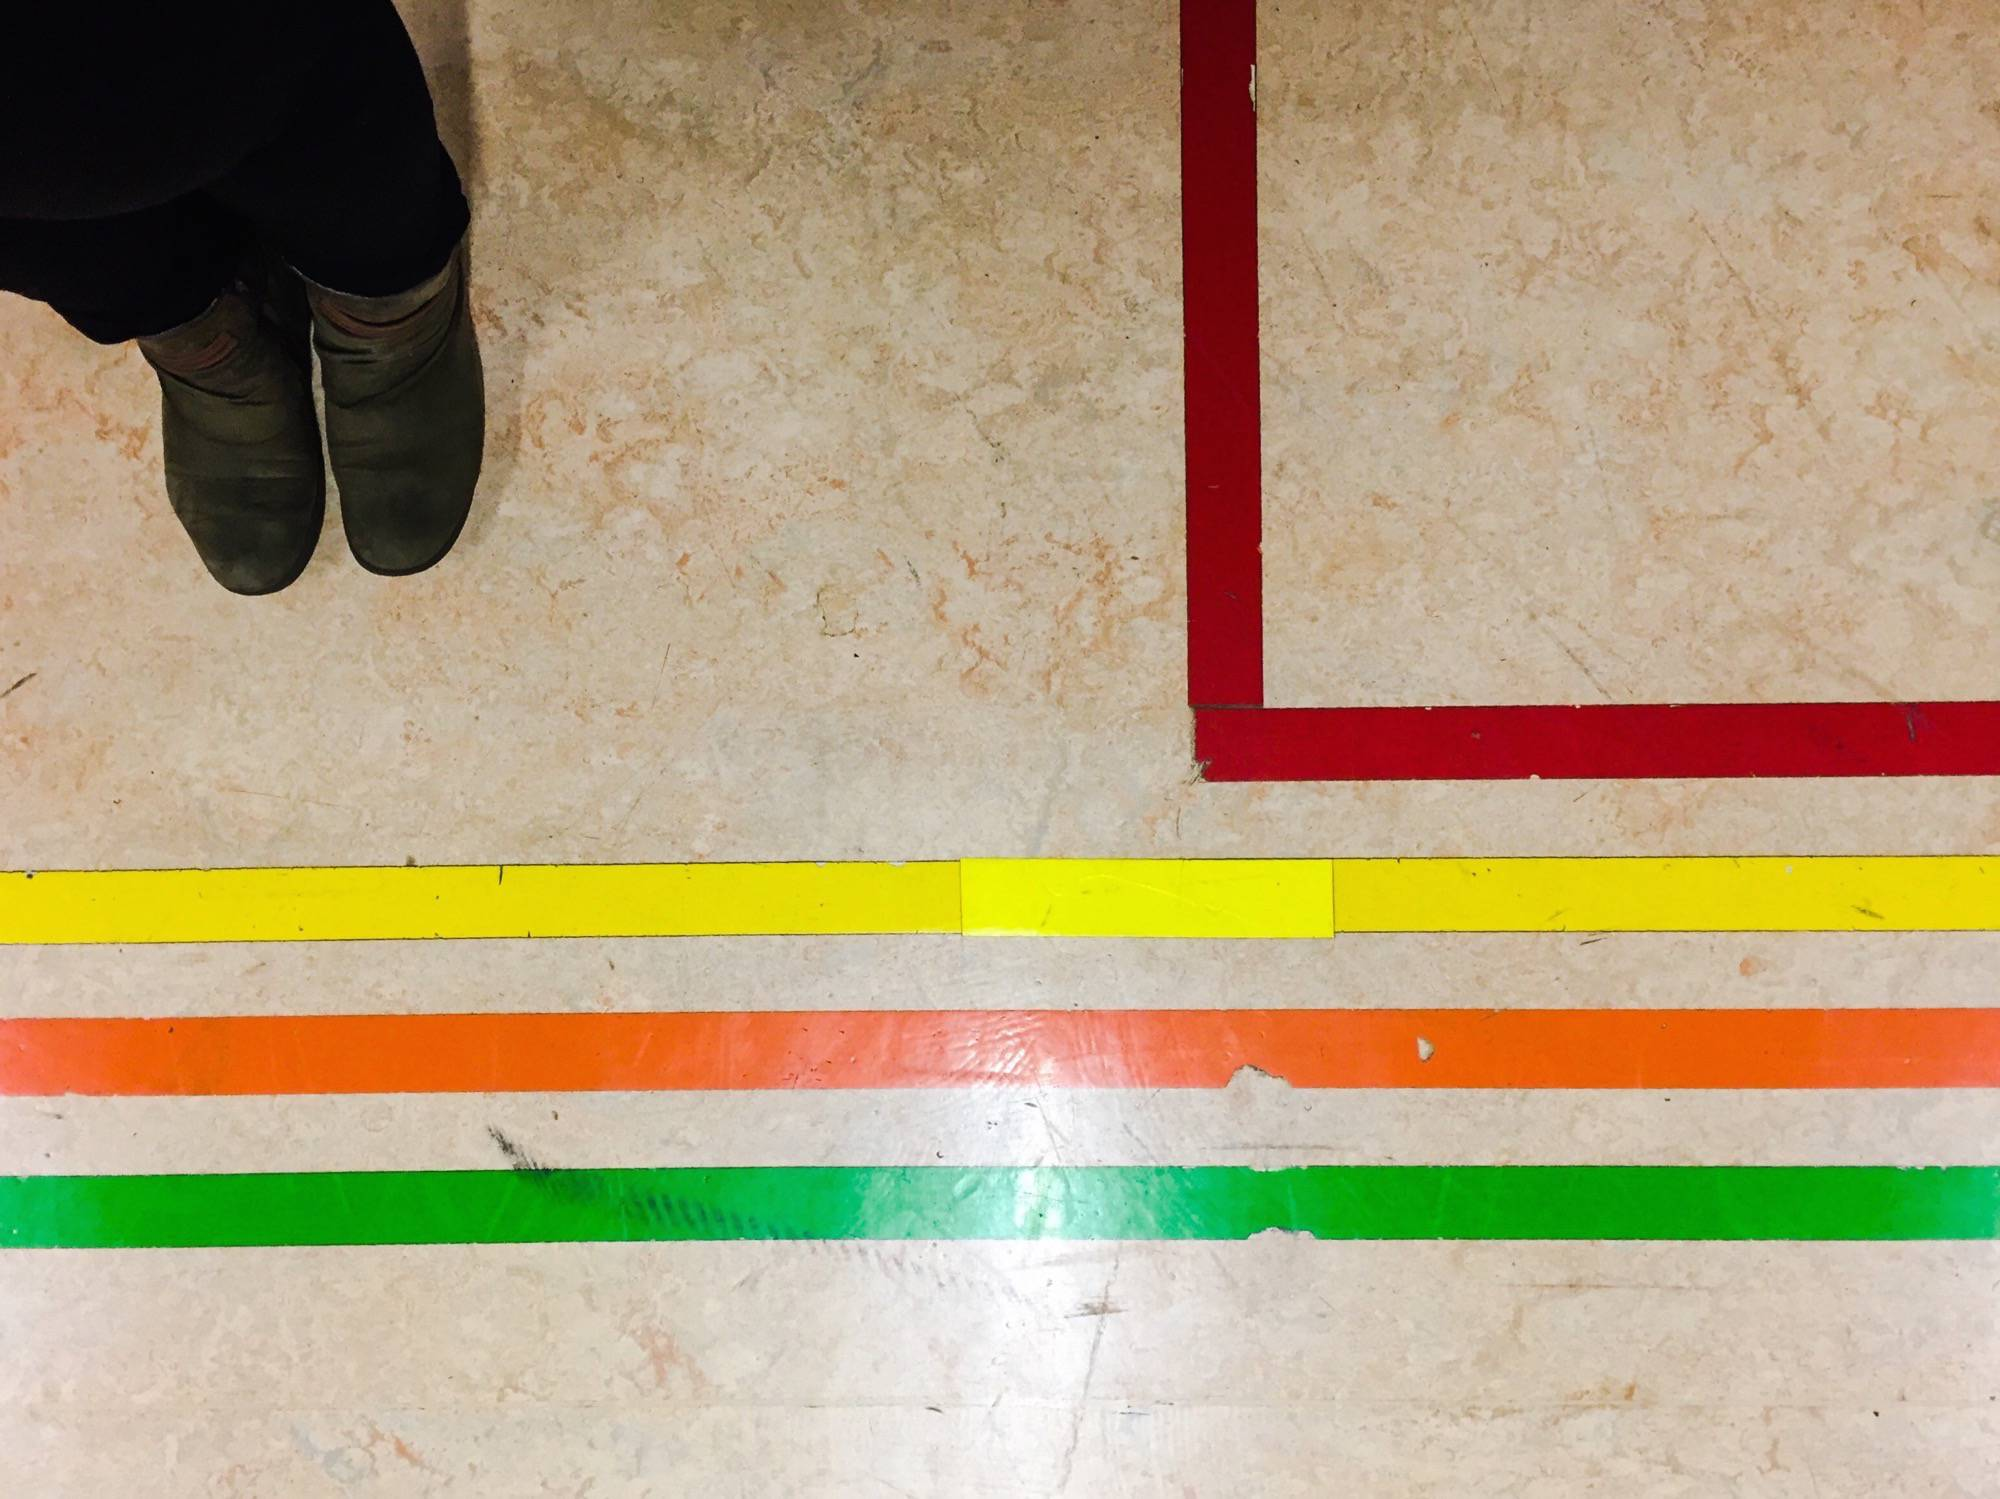 Where to go? Guiding lines on the floor of the hospital.